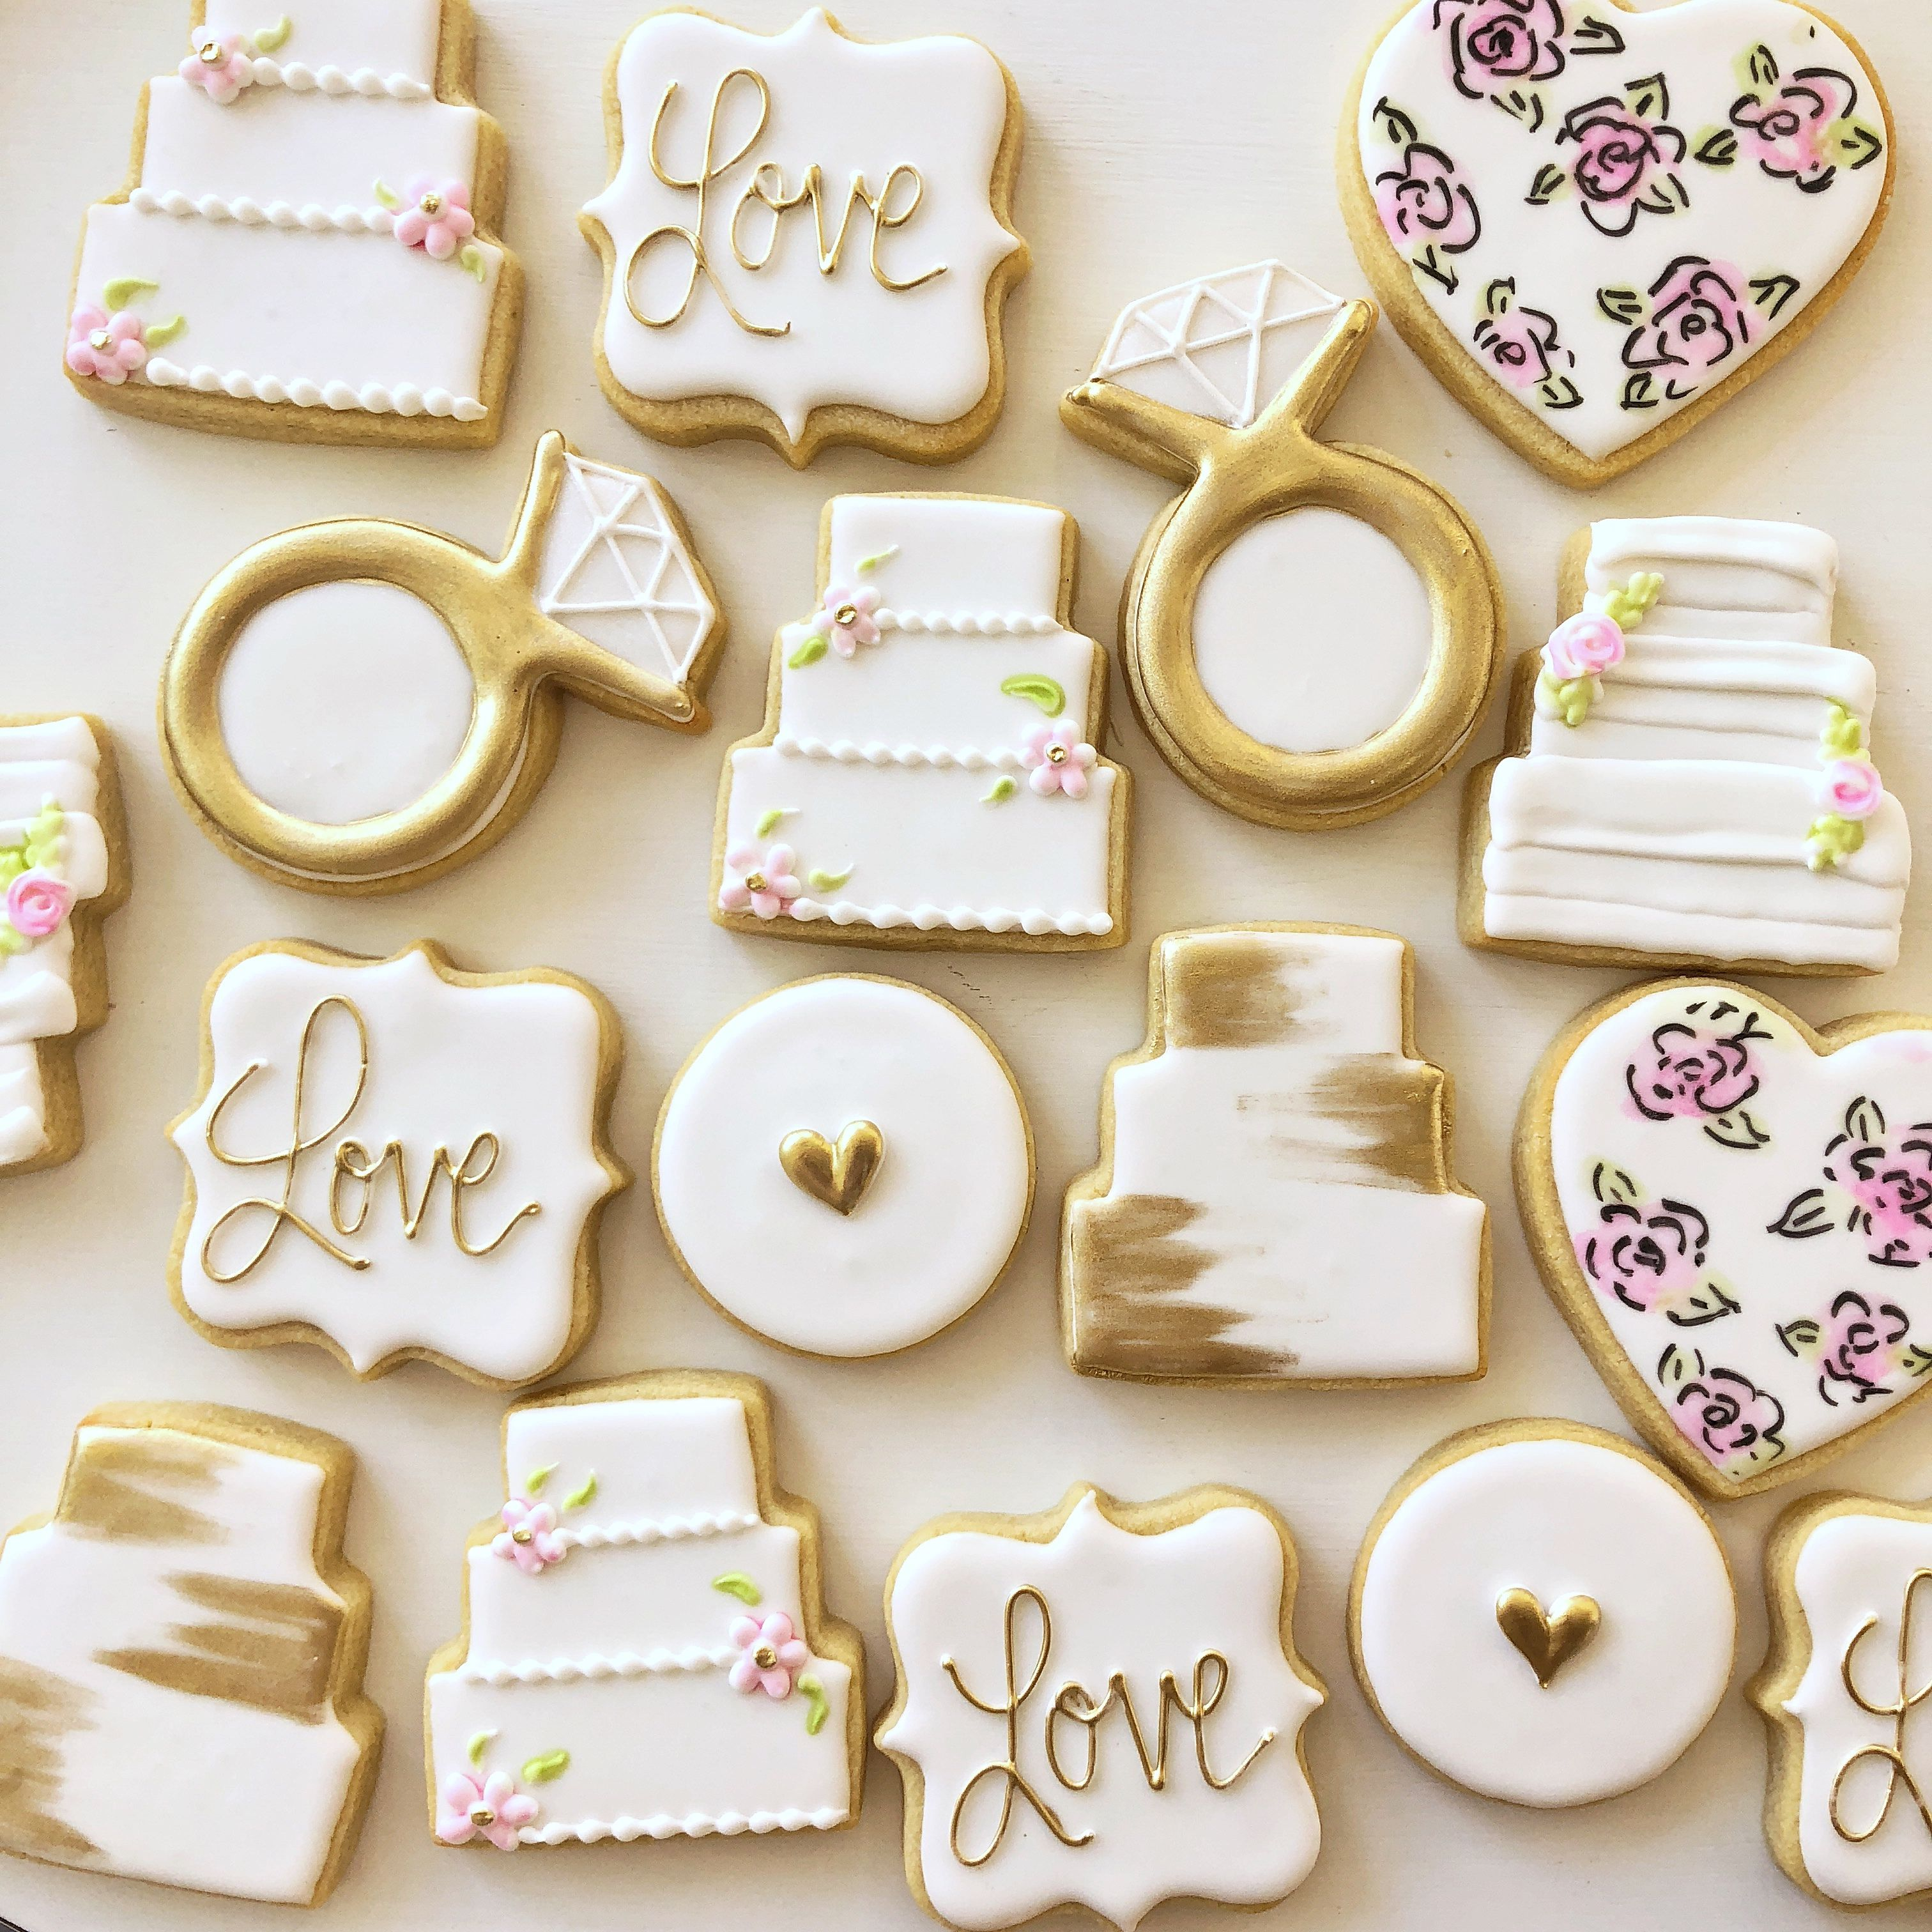 Wedding themed decorated sugar cookies. Perfect for